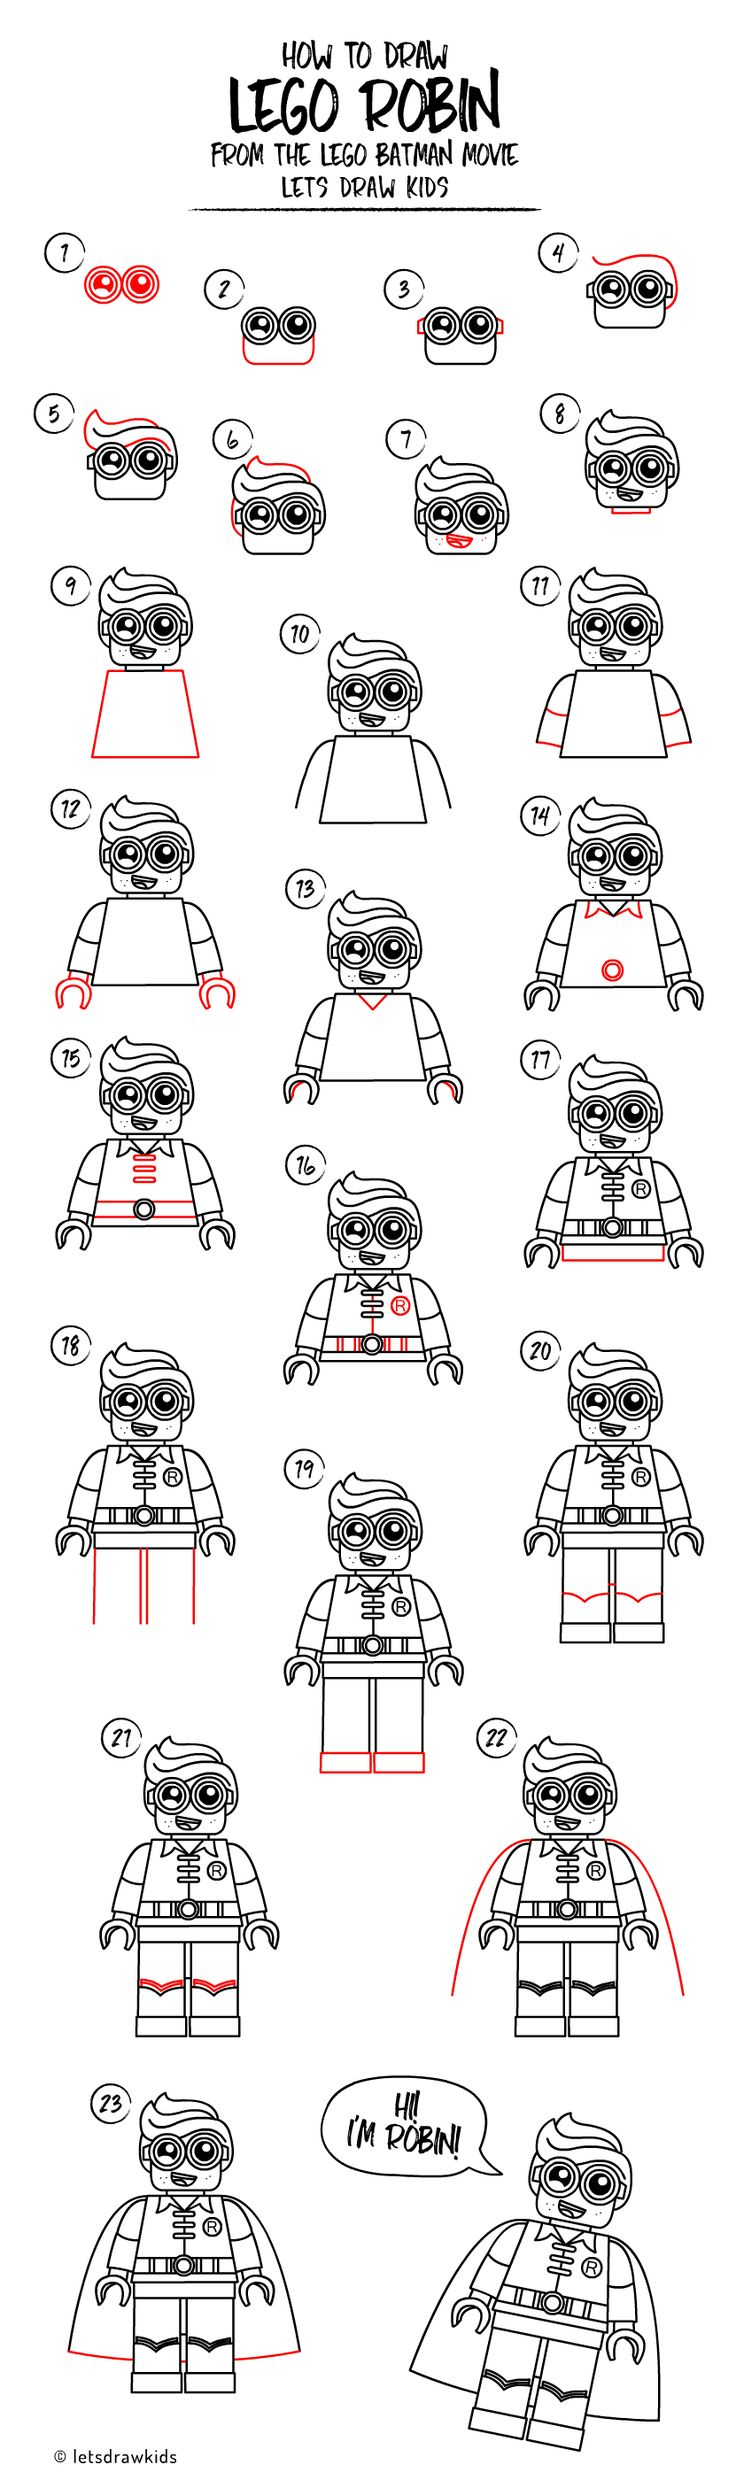 How to draw LEGO ROBIN. Easy drawing, step by step, perfect for kids! Let's draw kids.